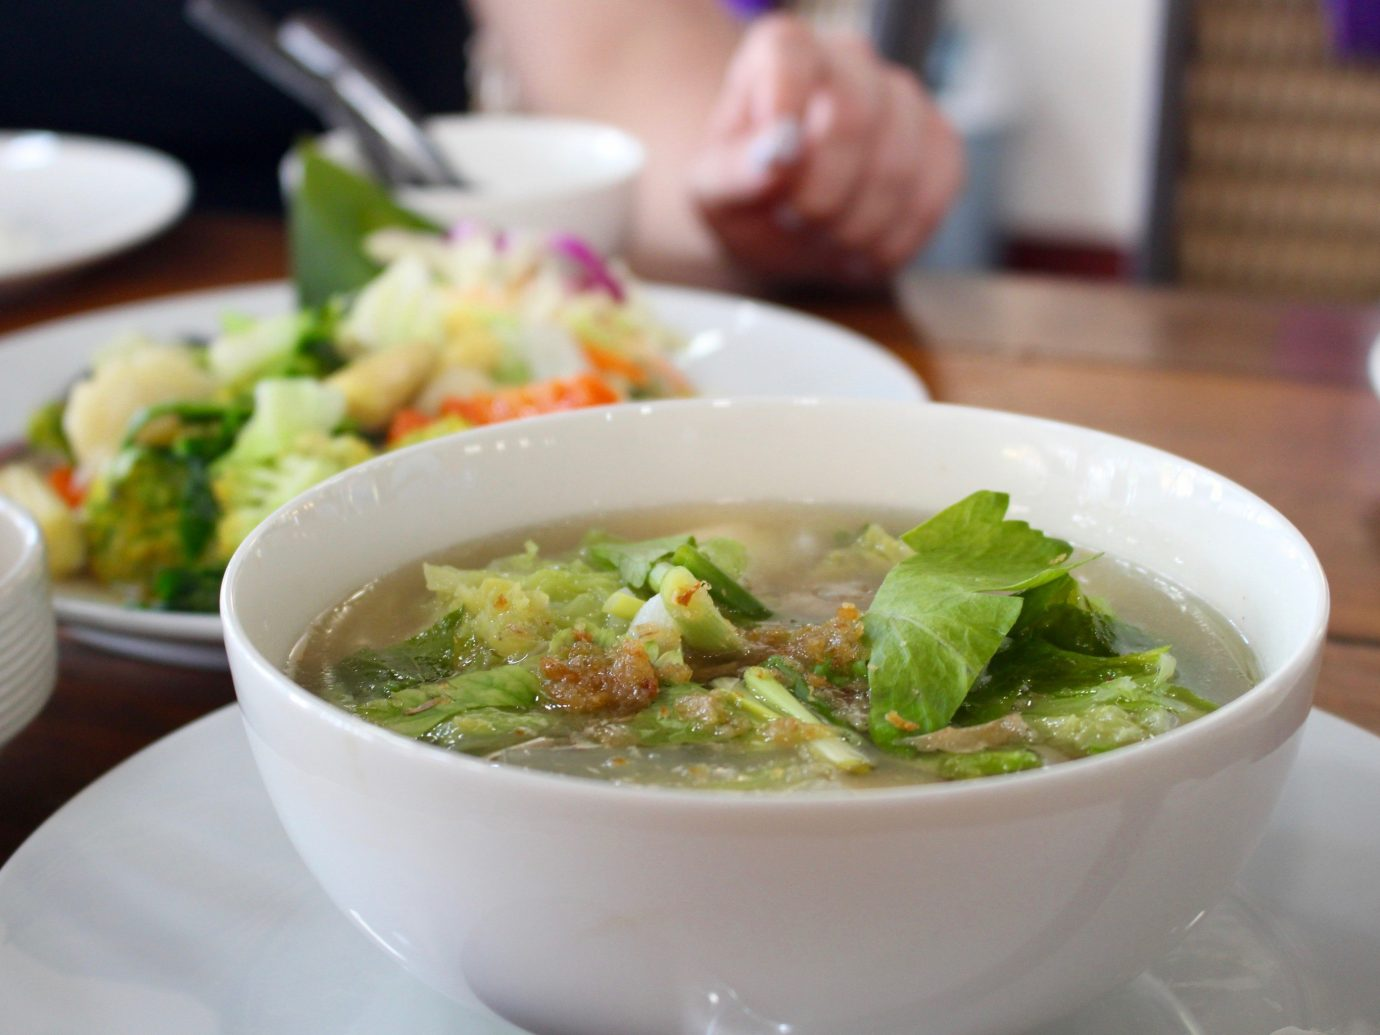 Jetsetter Guides table food plate dish indoor bowl cuisine soup meal lunch produce salad asian food pho southeast asian food chinese food